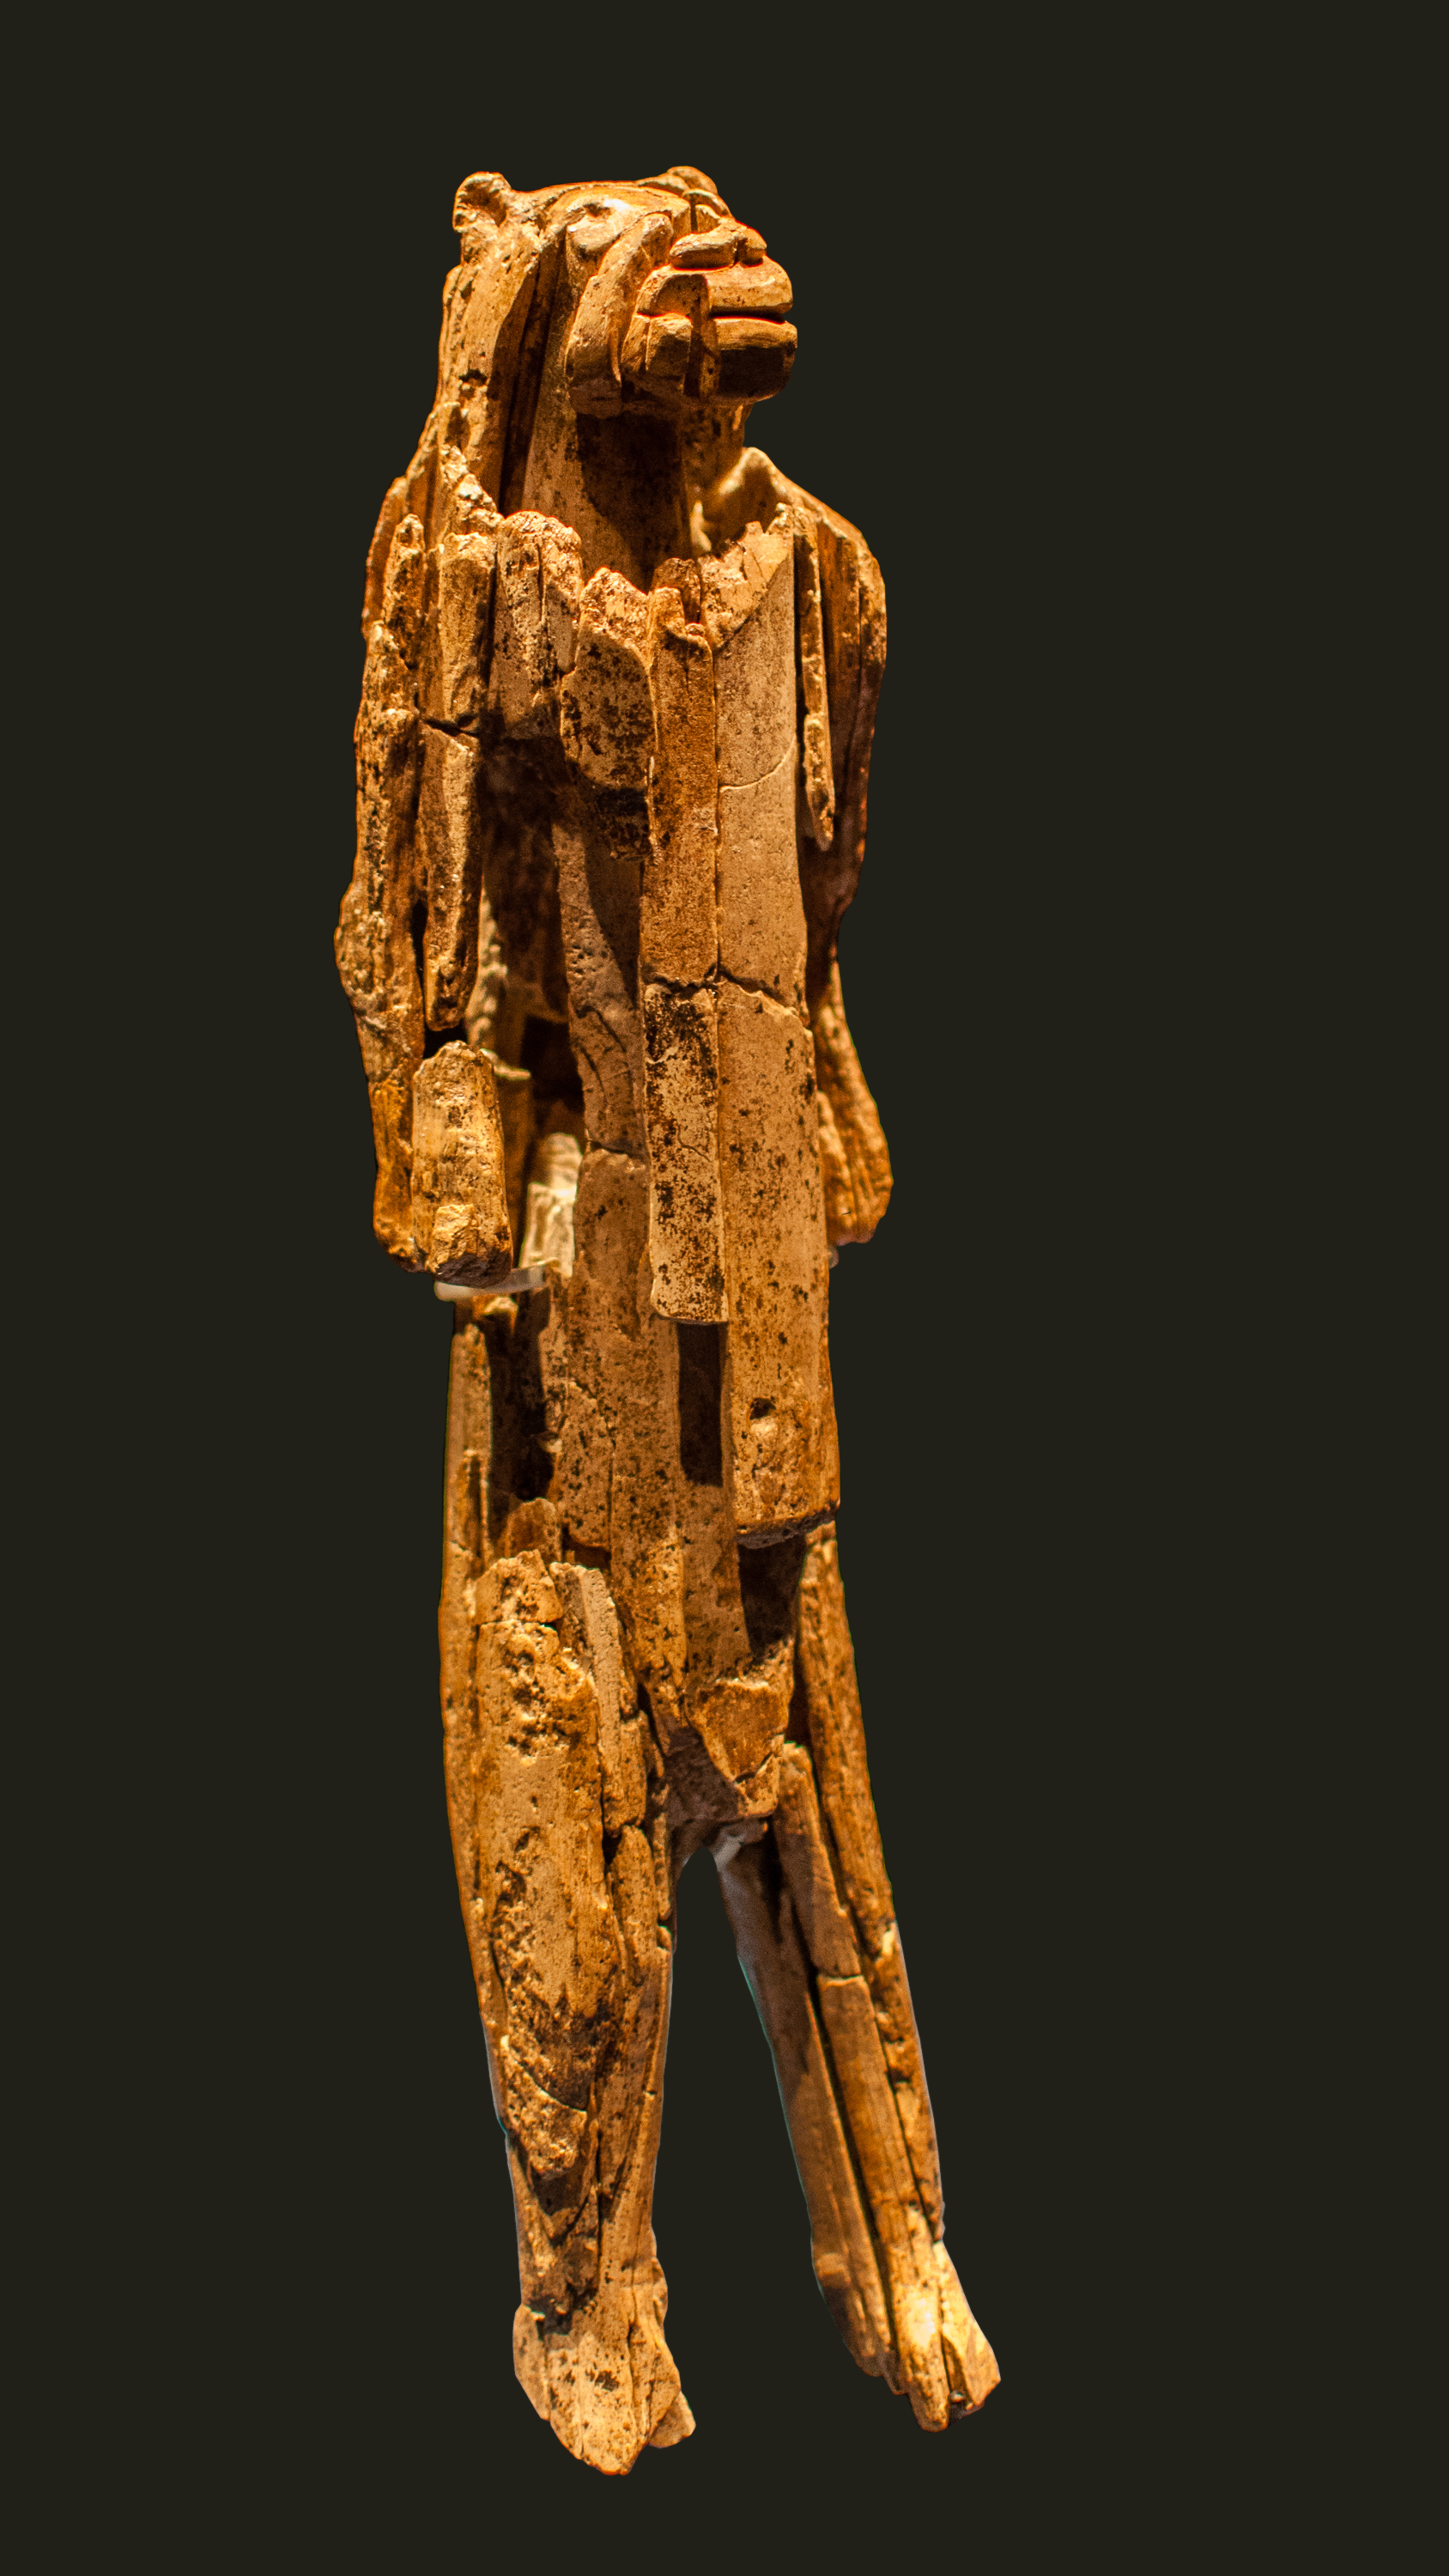 The Stadel Lion Man is thought to be one of the earliest examples of Homo sapiens imagining things that do not exist. Religions and gods came next.